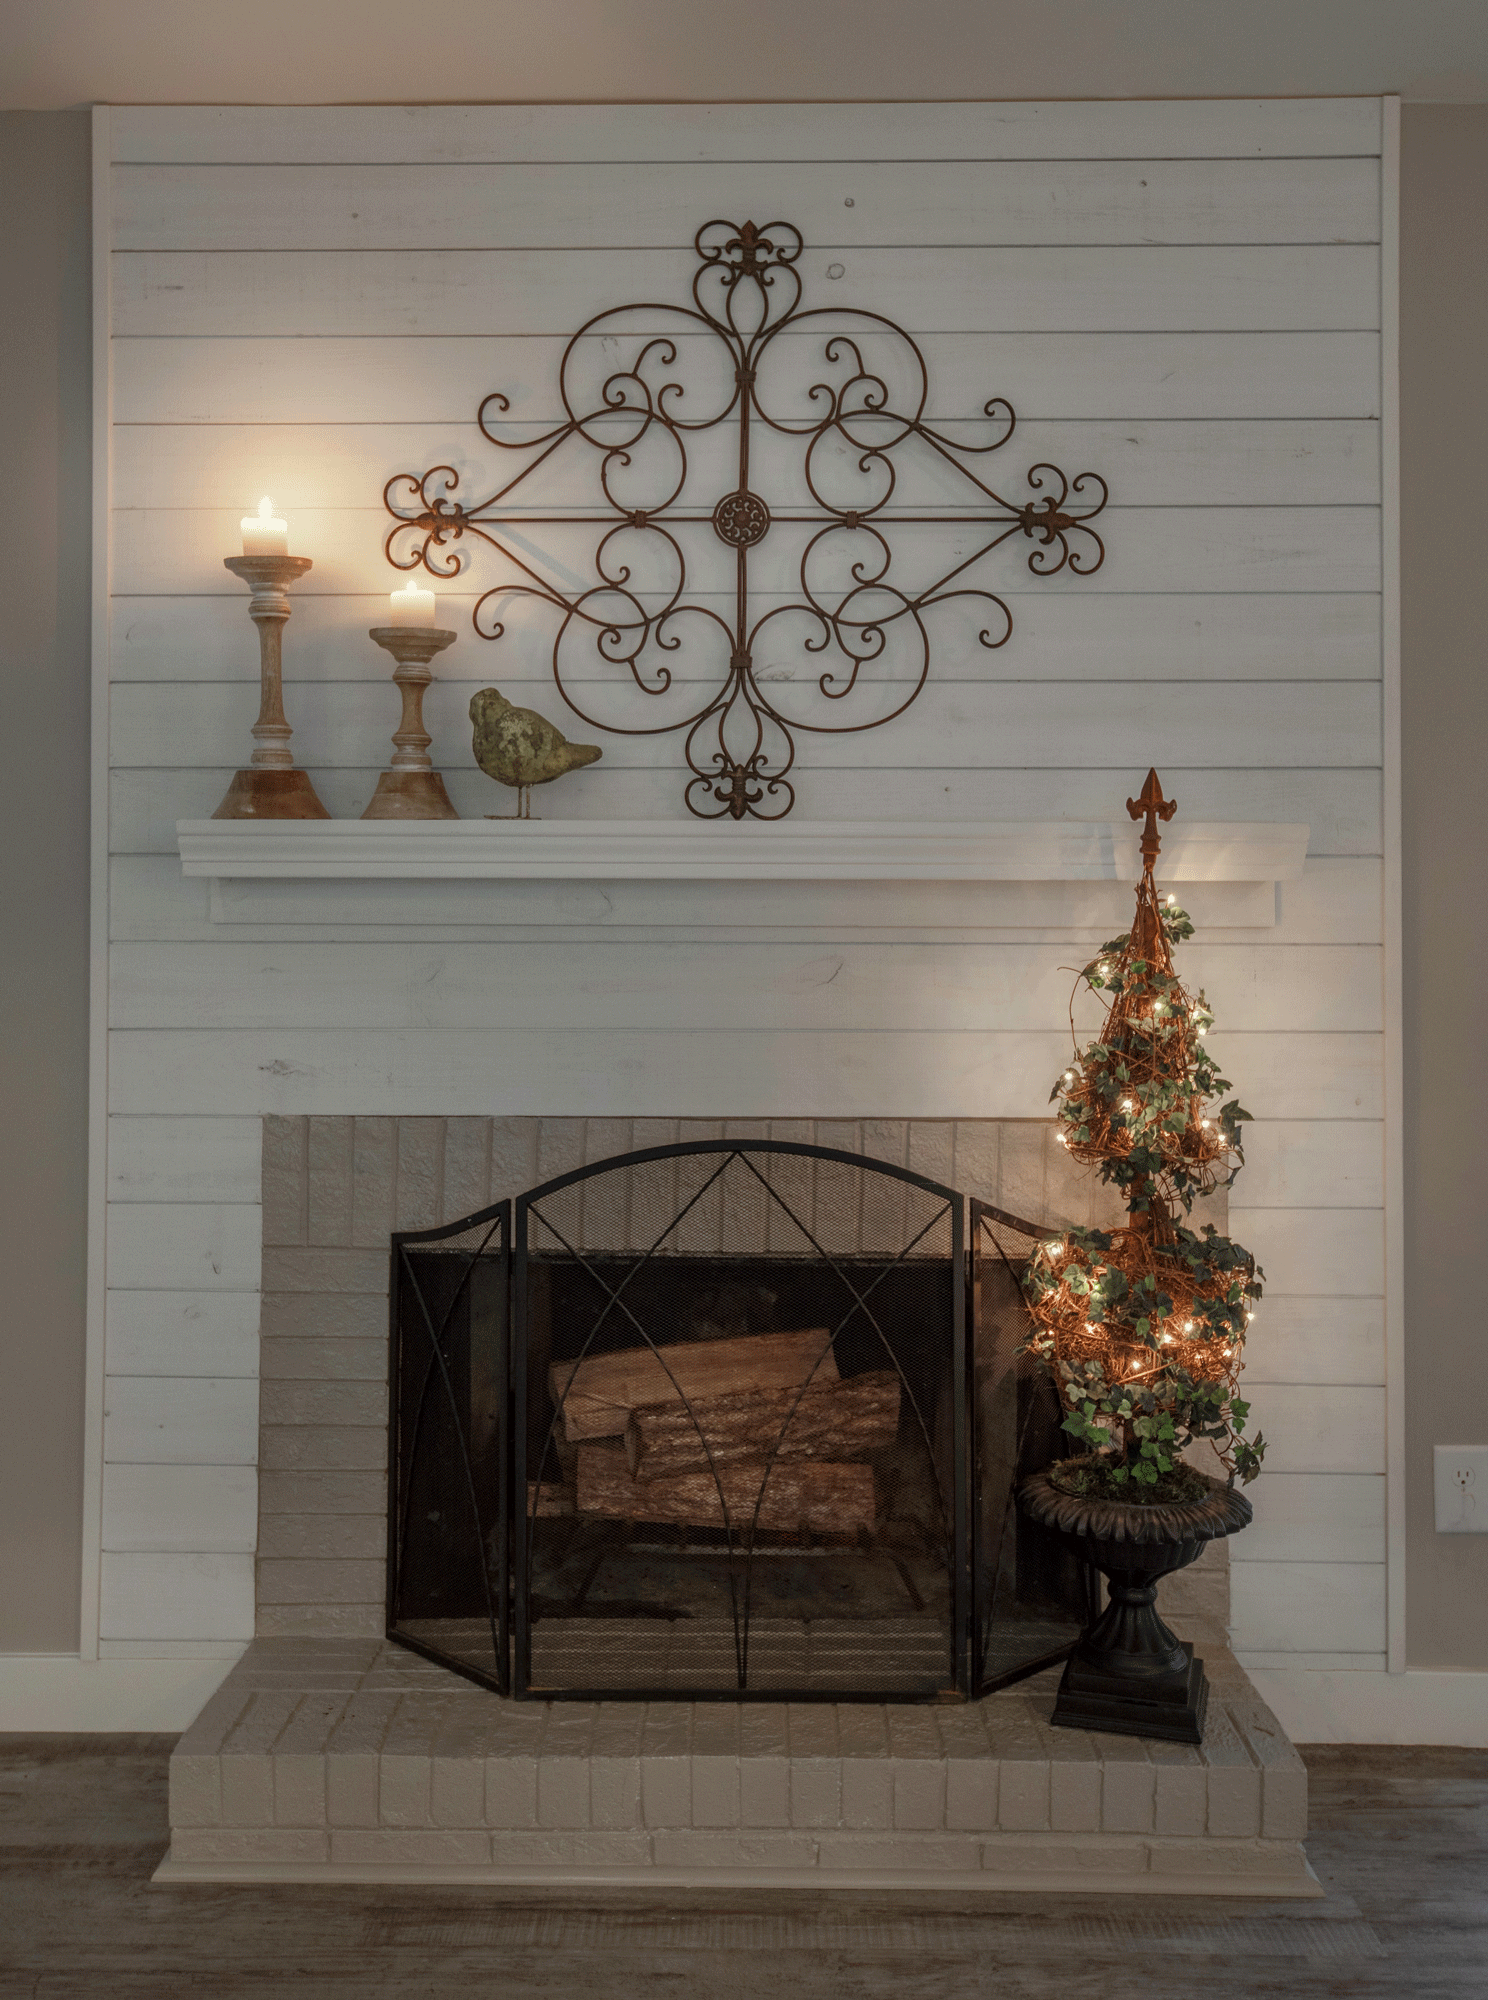 Fireplace mantle design with holiday tree and candles